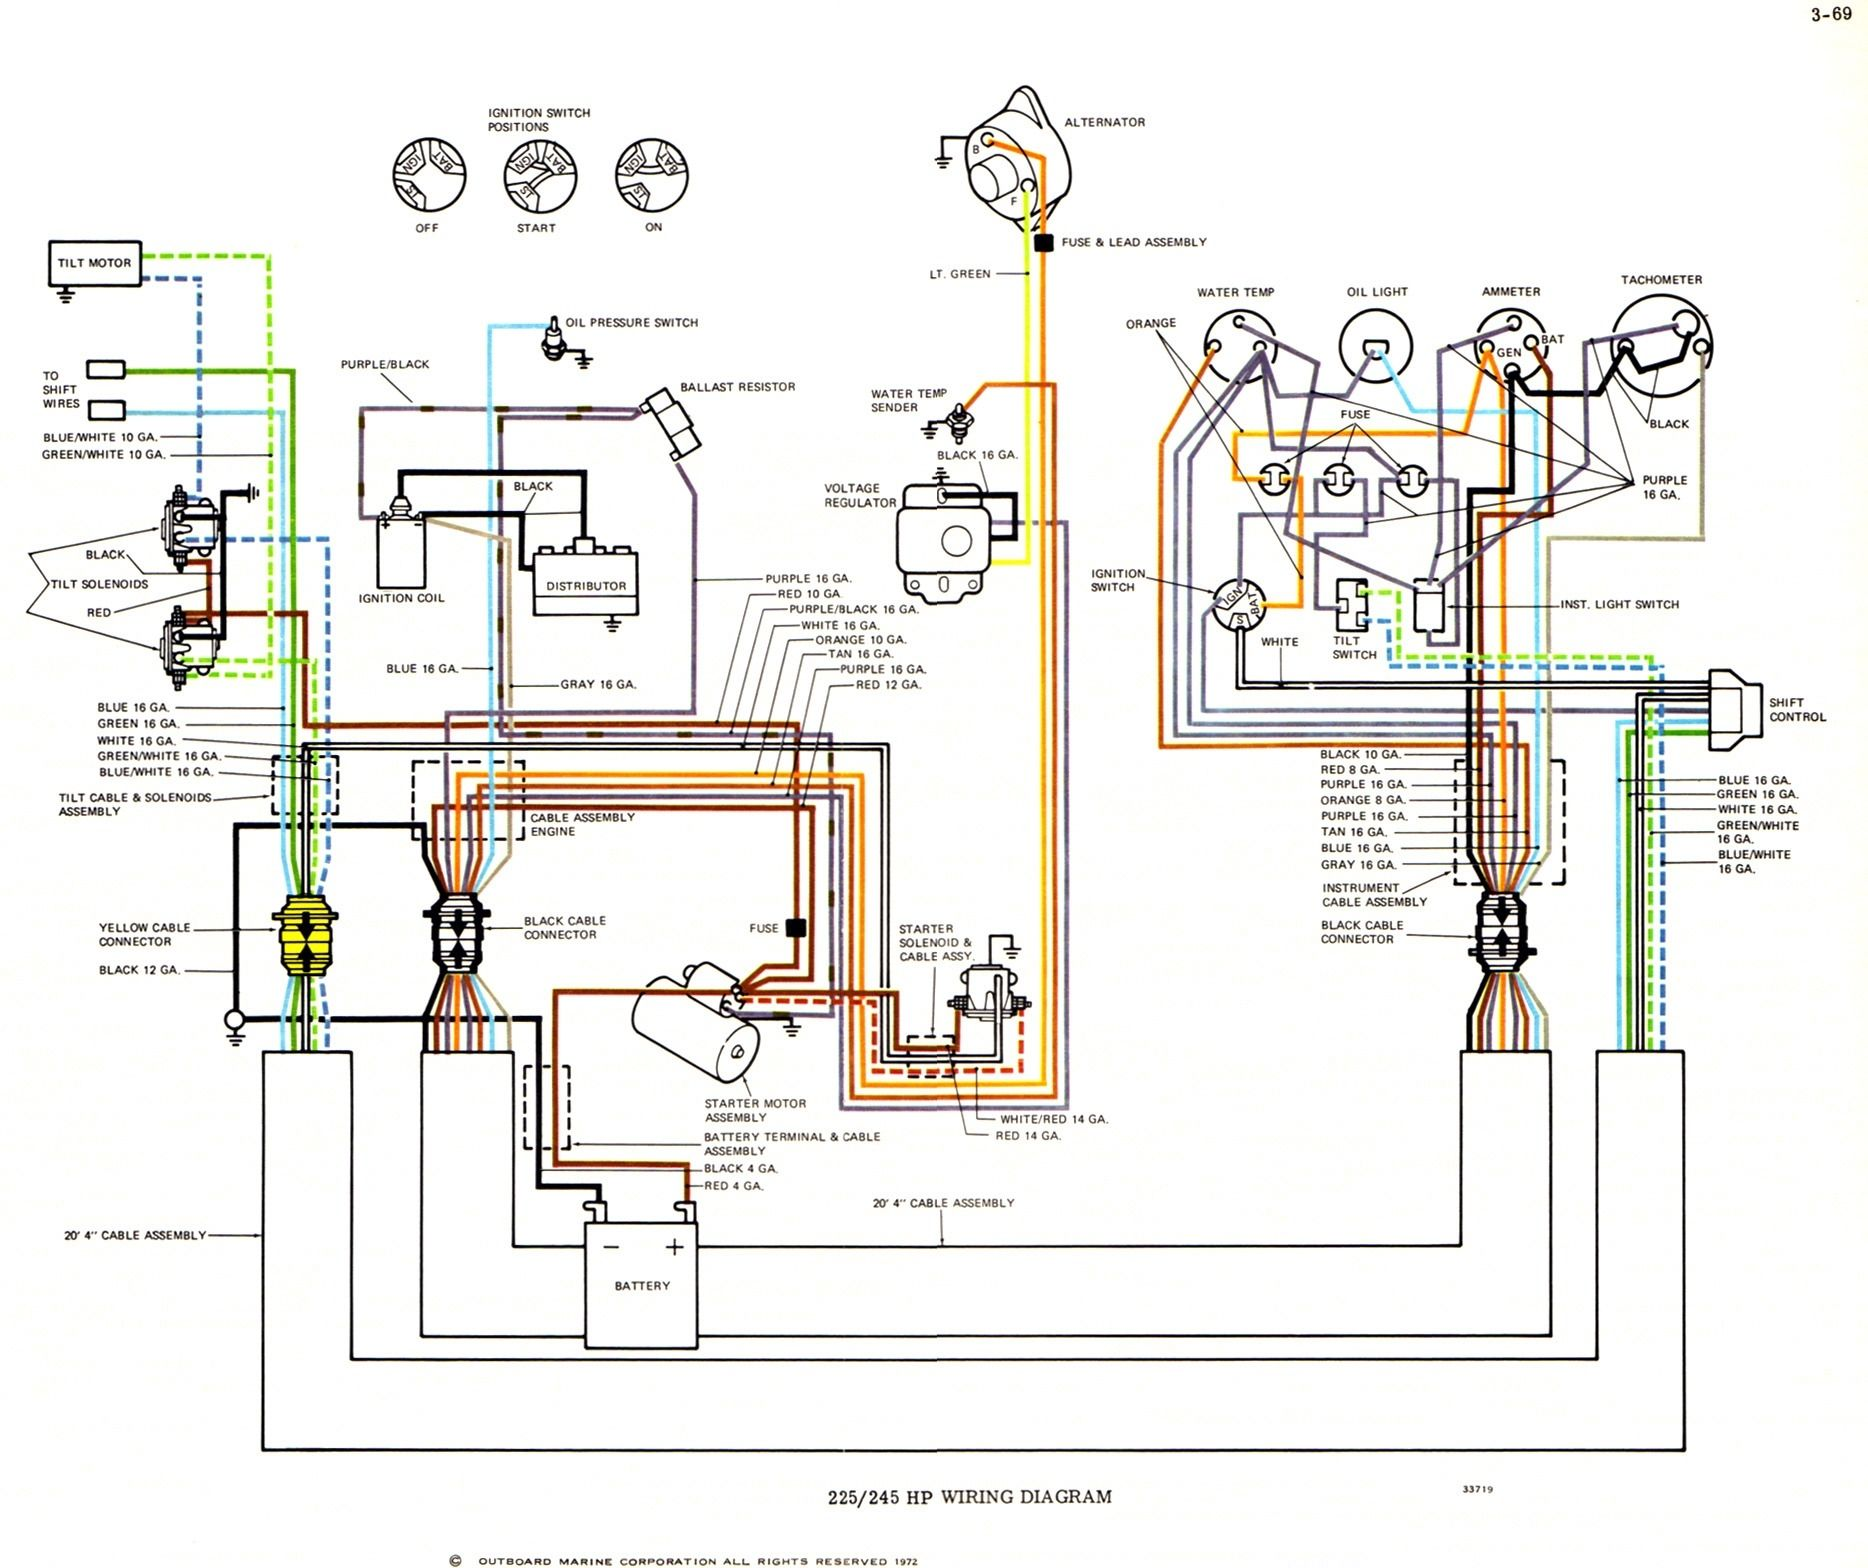 Yamaha 4 3 Wiring Diagram - Wiring Diagram & Cable Management on